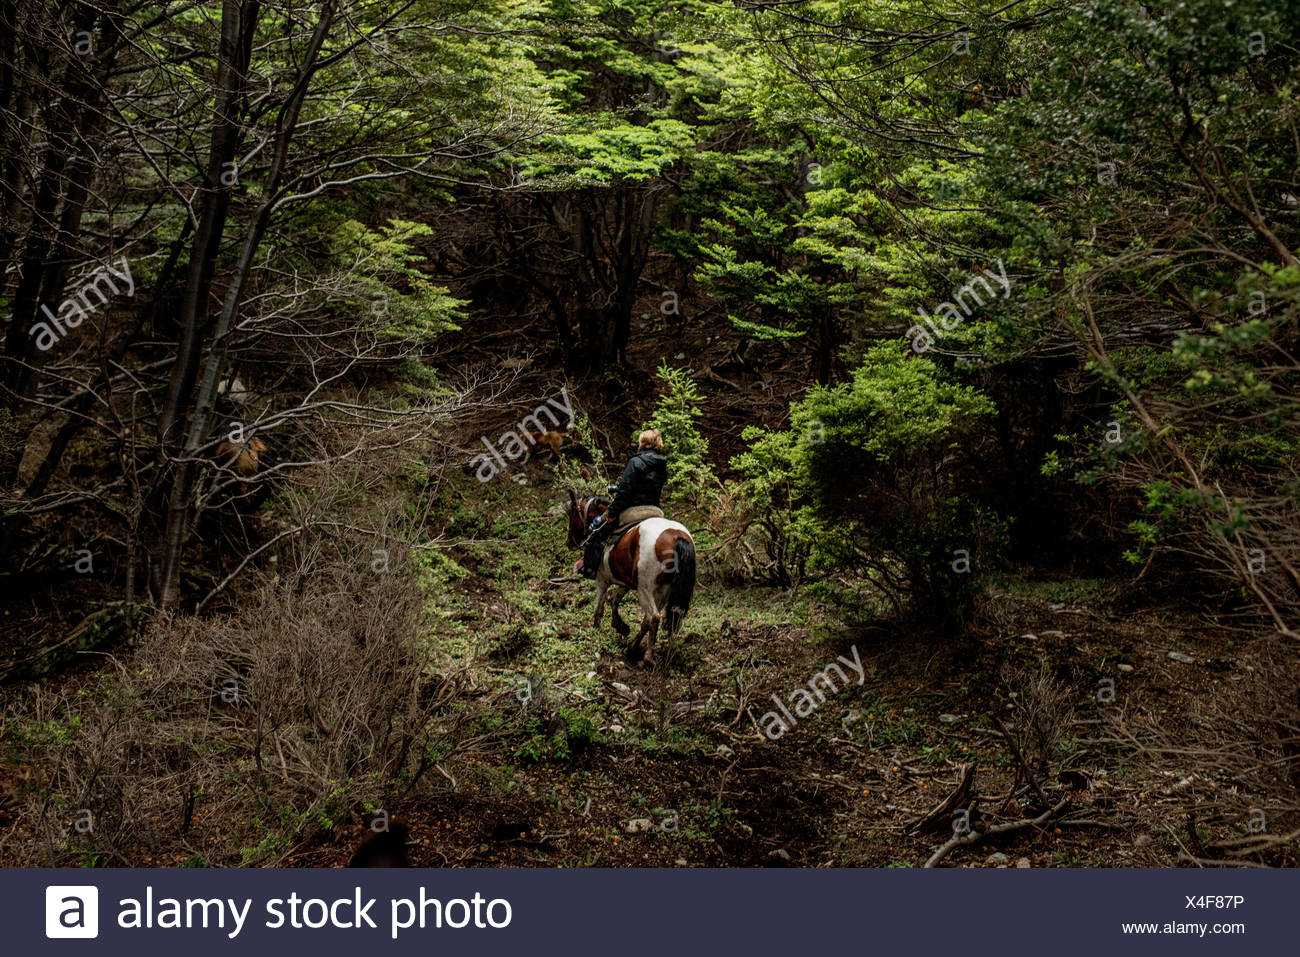 A bagualero, or cowboy who captures feral livestock, rides through a dense forest. - Stock Image